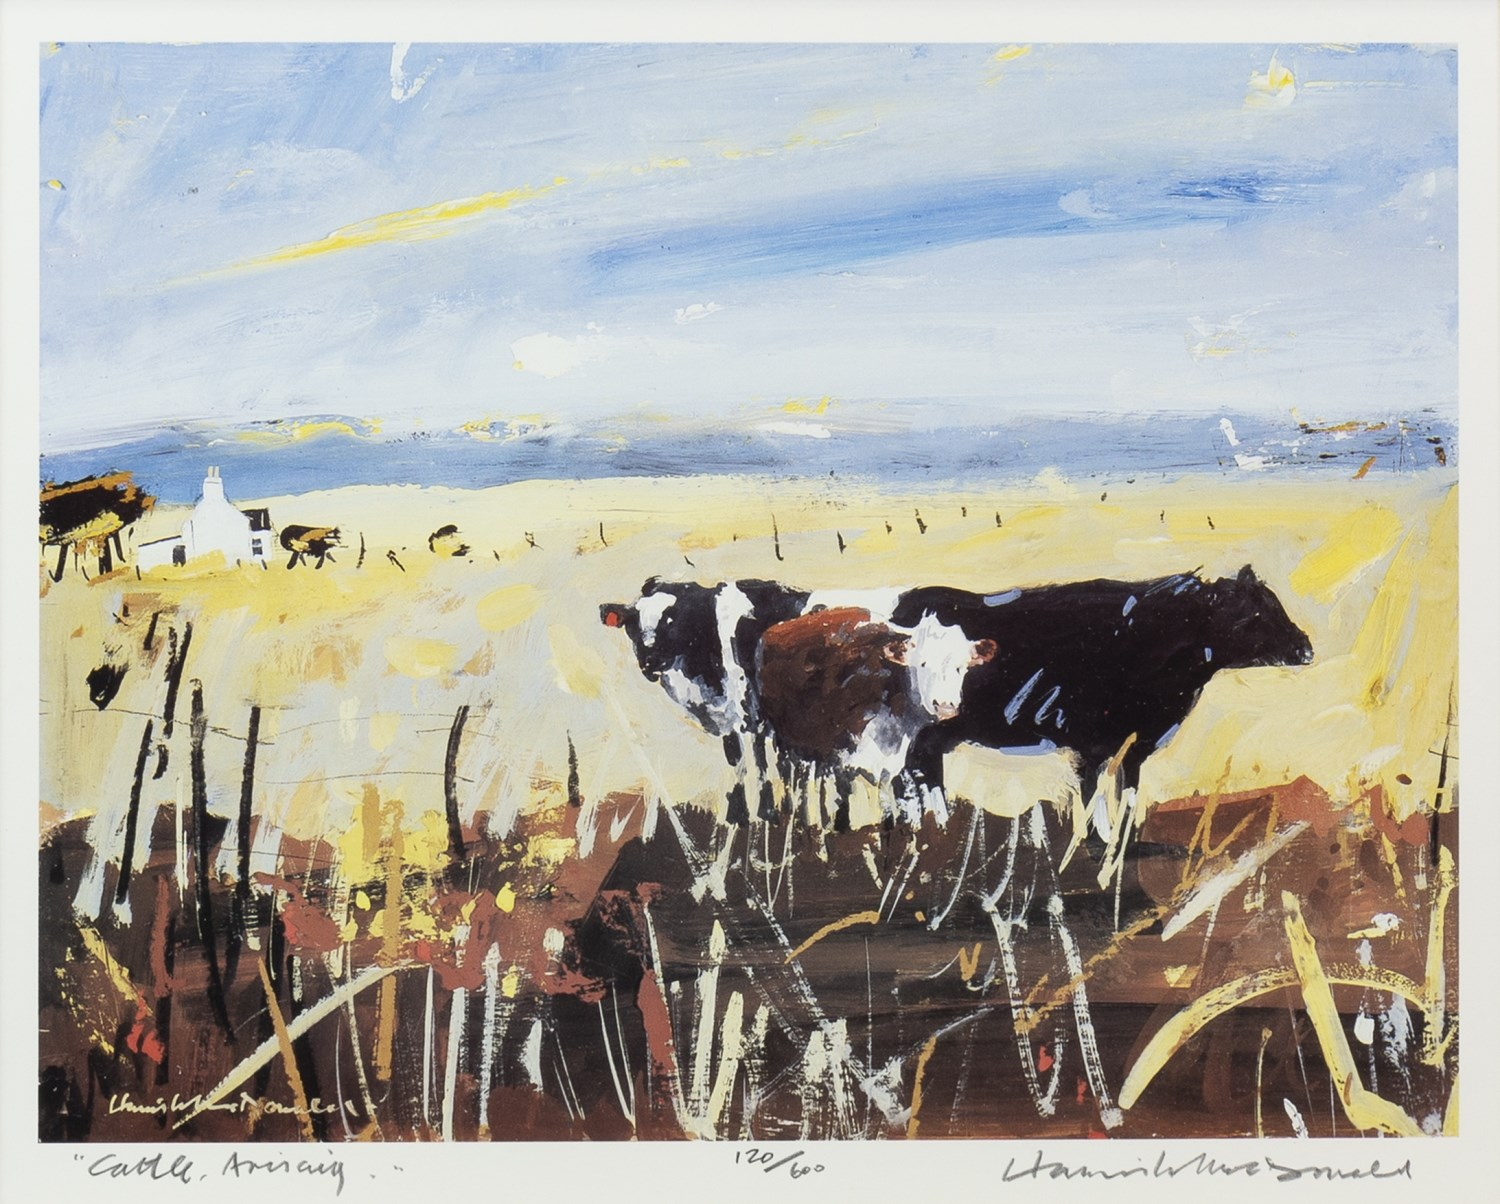 Lot 52 - CATTLE, ARISAIG, A LIMITED EDITION LITHOGRAPHIC PRINT BY HAMISH MACDONALD